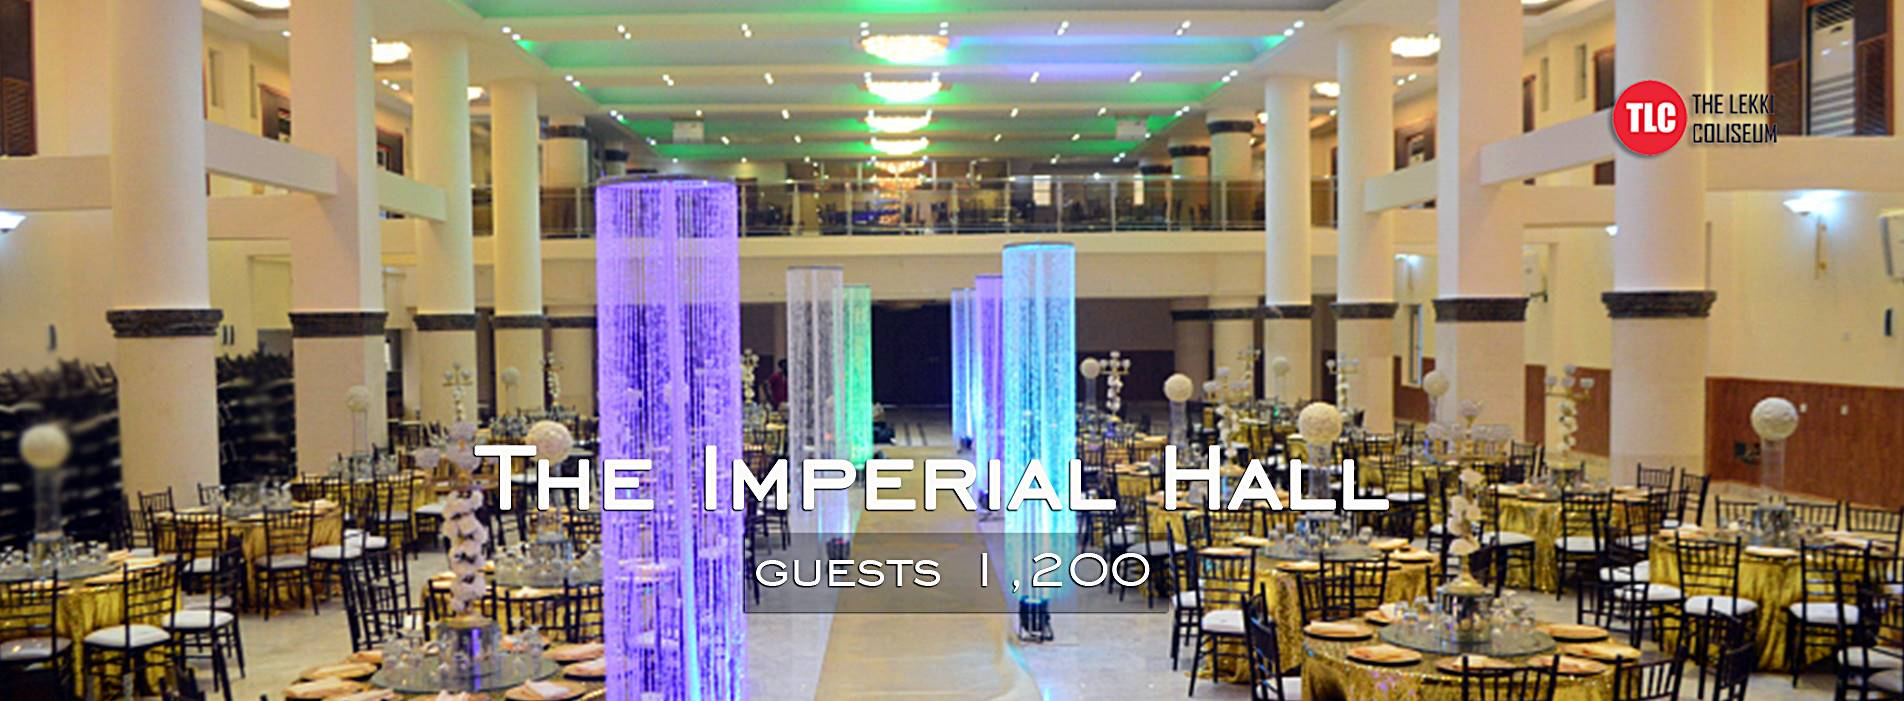 The Lekki Coliseum (TLC) – The Imperial Hall